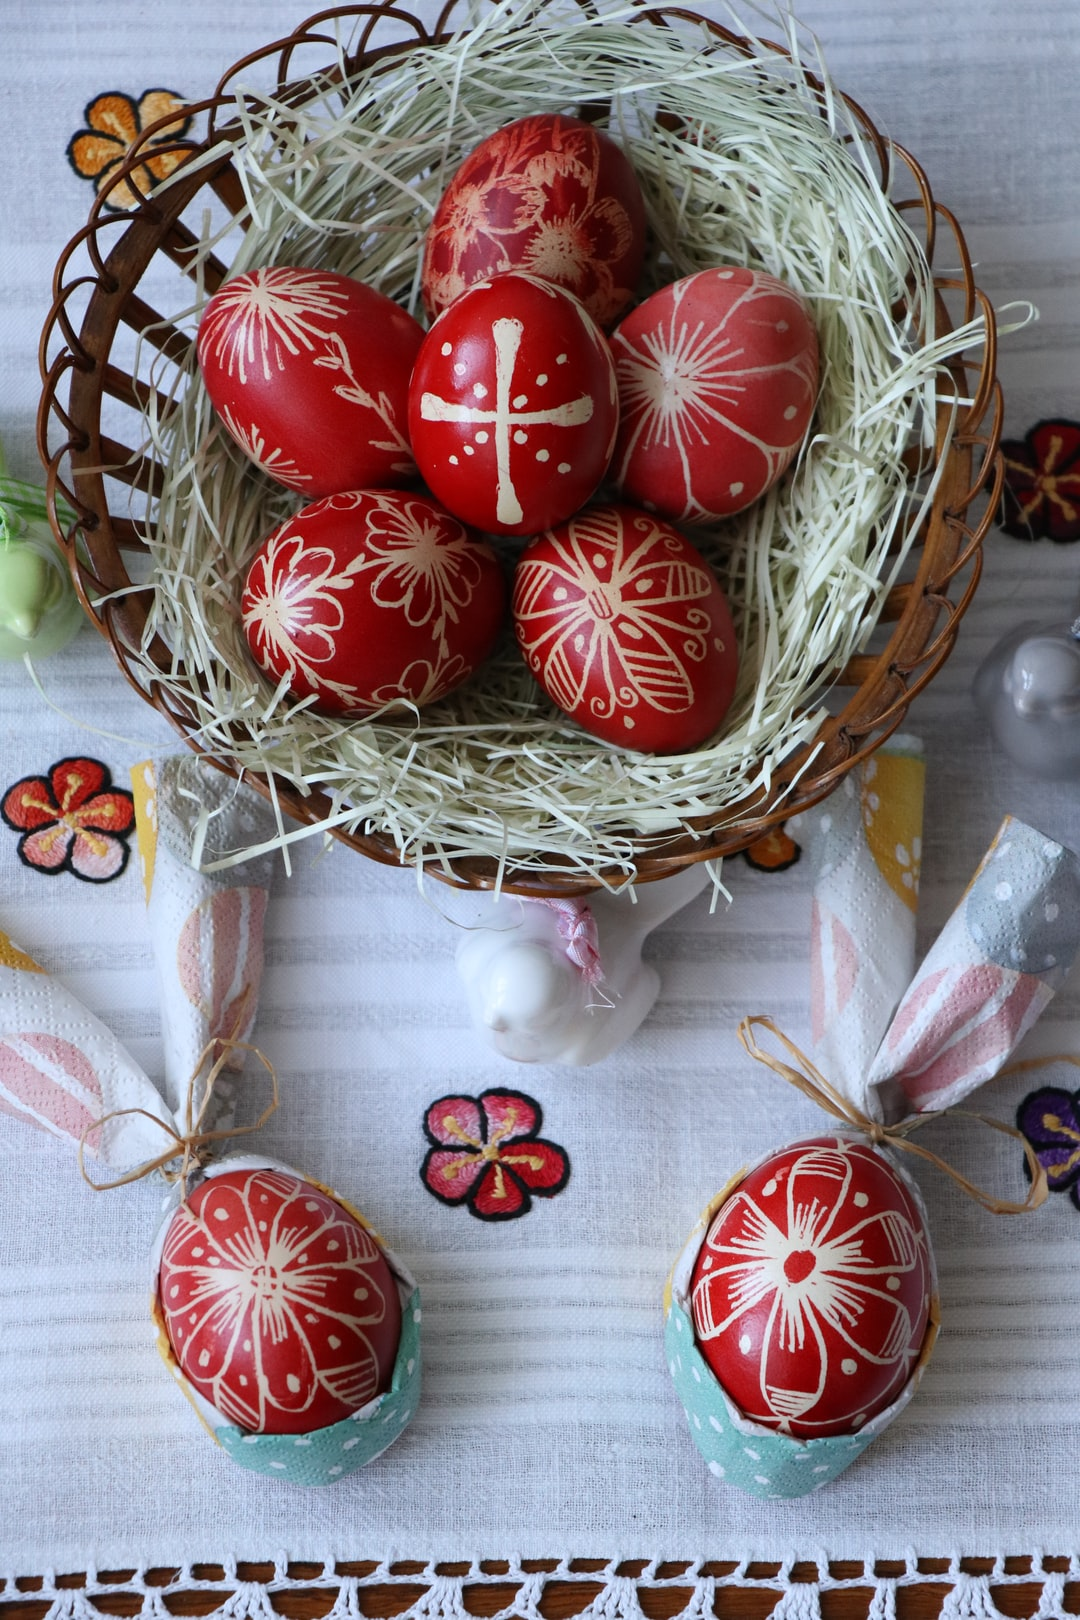 Serbian traditional Easter eggs